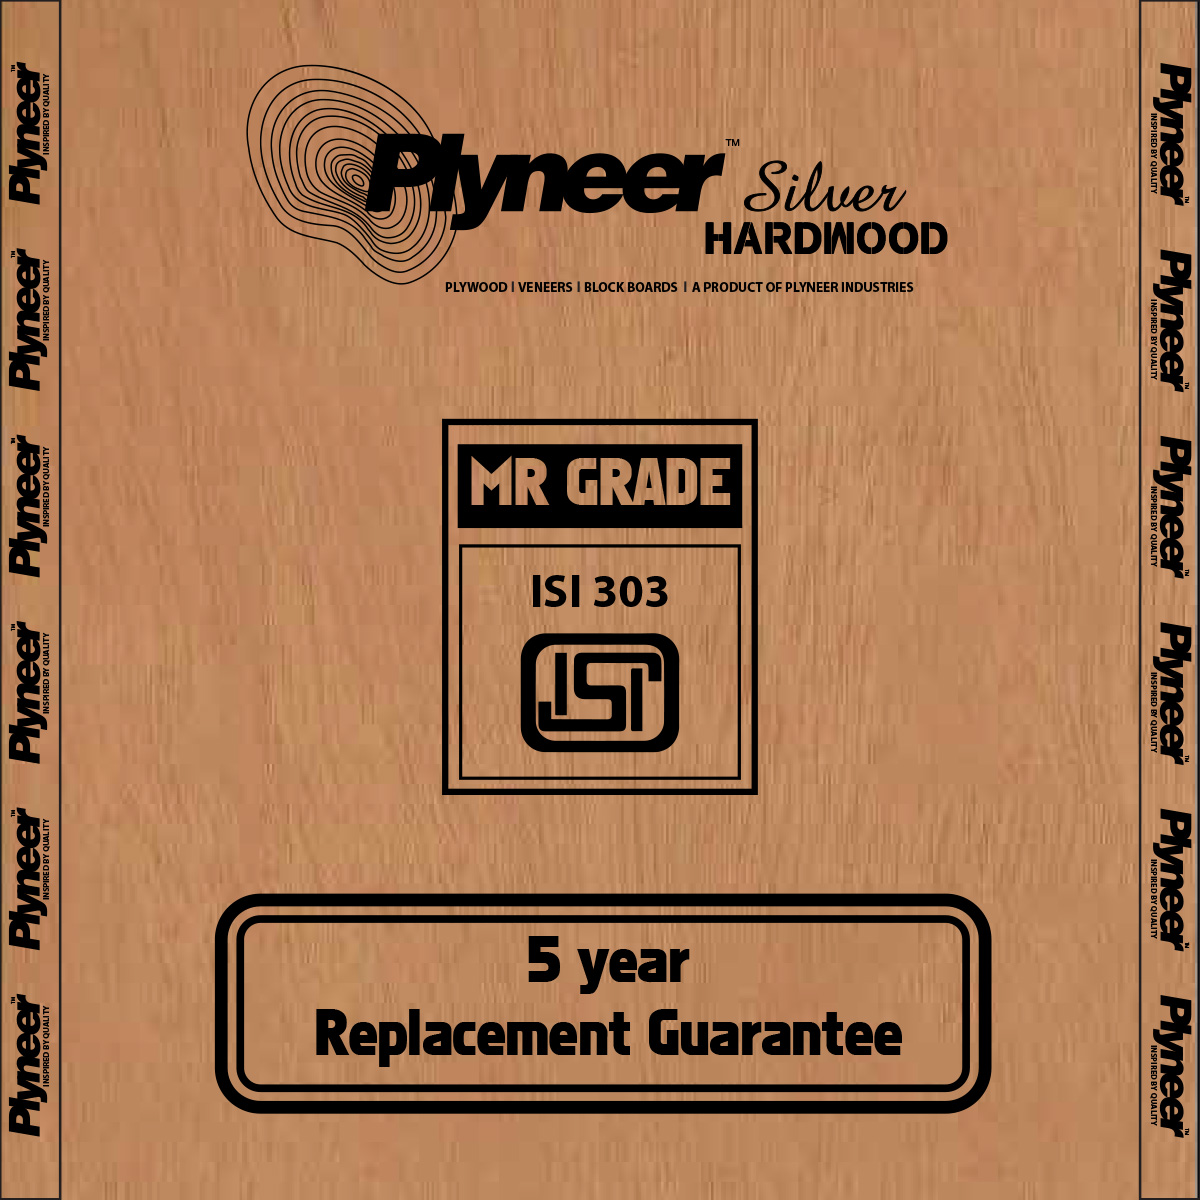 Plyneer Silver B.W.R. Hardwood Water Resistant Block Board - 5 Years Replacement Guarantee*